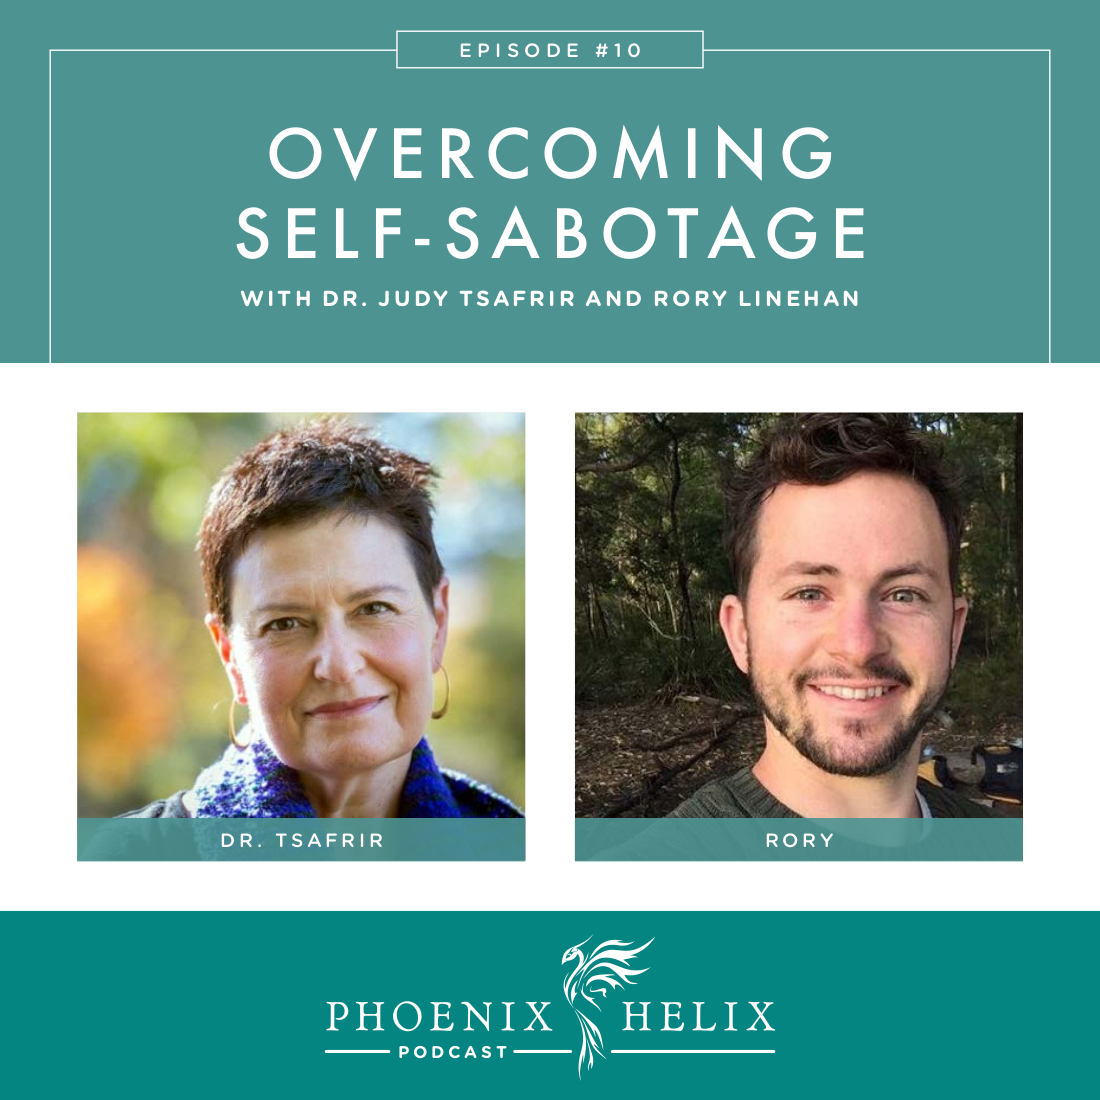 Overcoming Self-Sabotage | Phoenix Helix Podcast